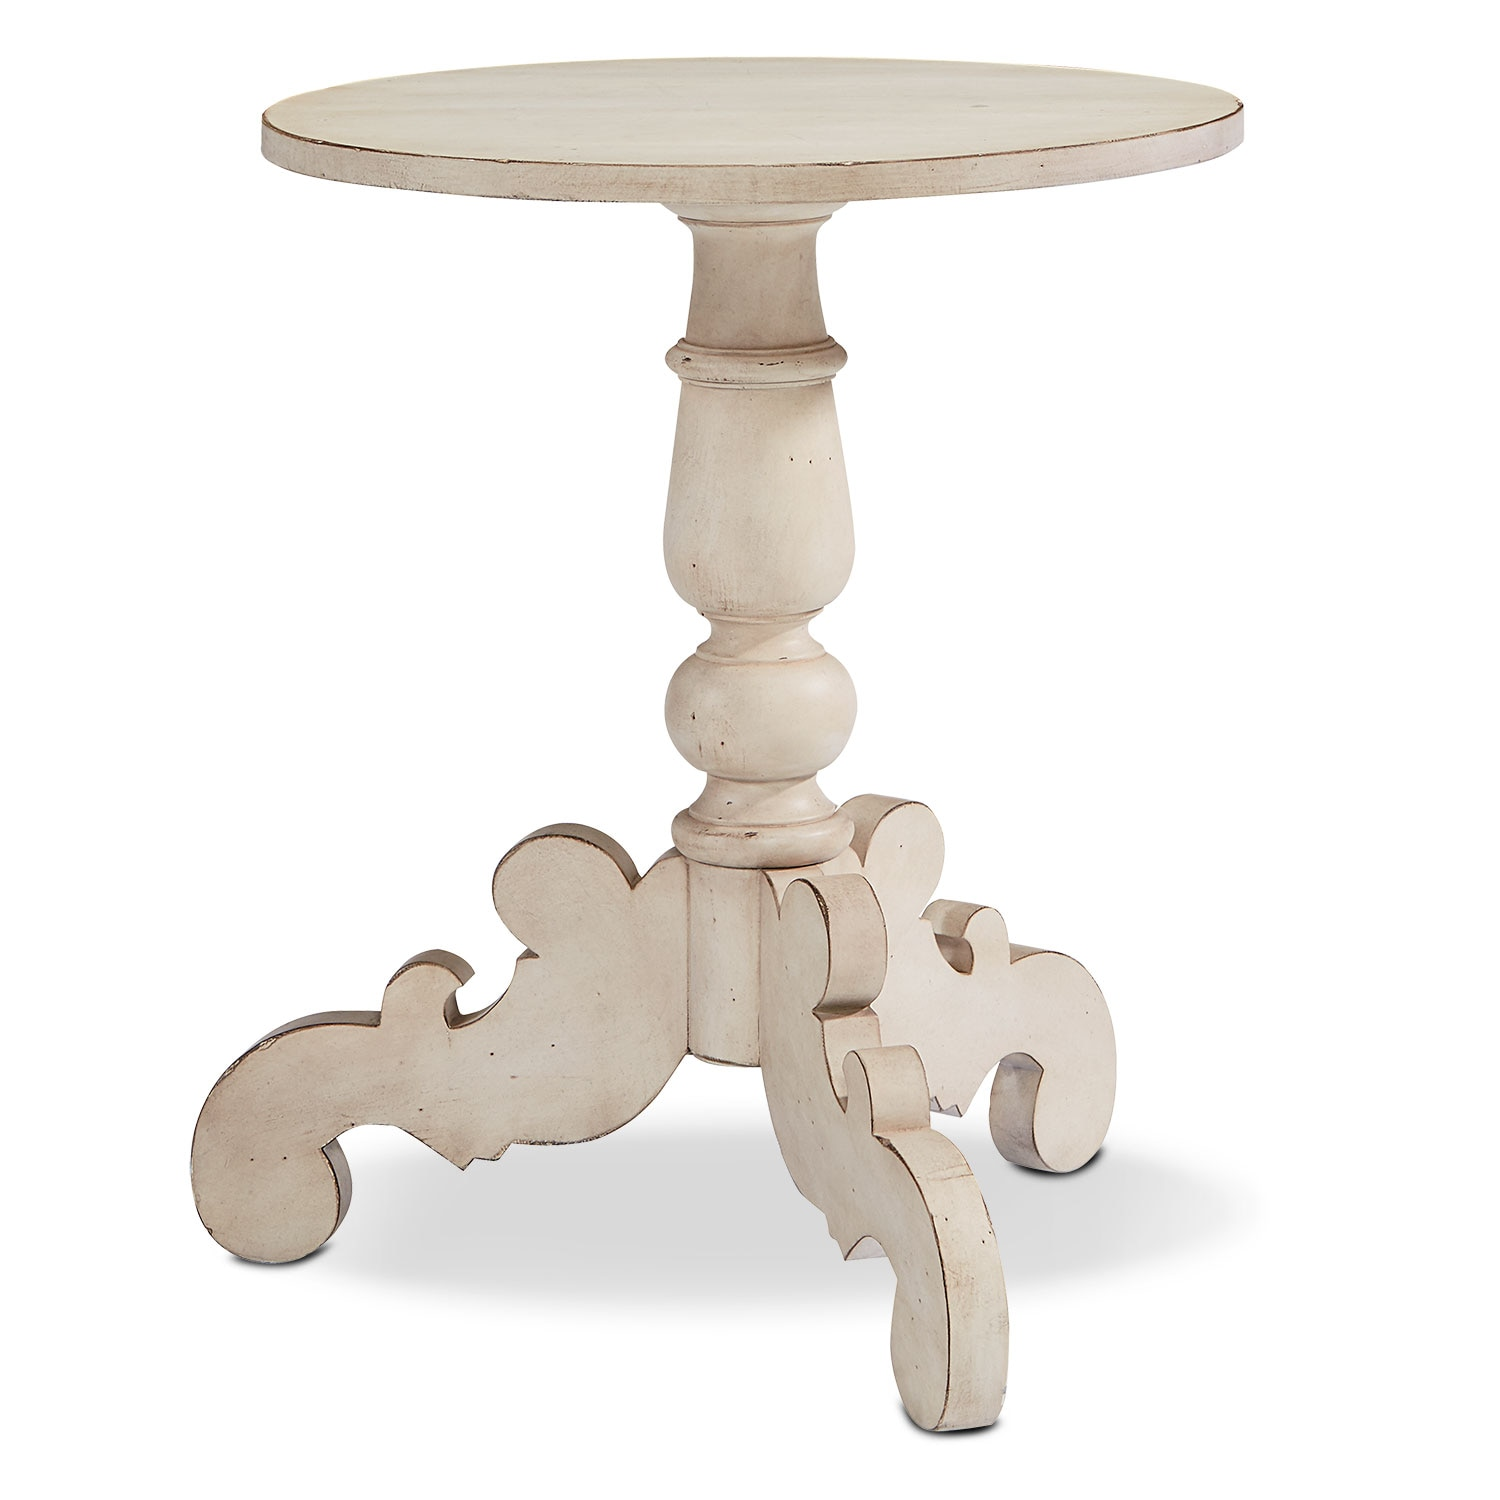 French Inspired Tripod Hall Table - Antique White